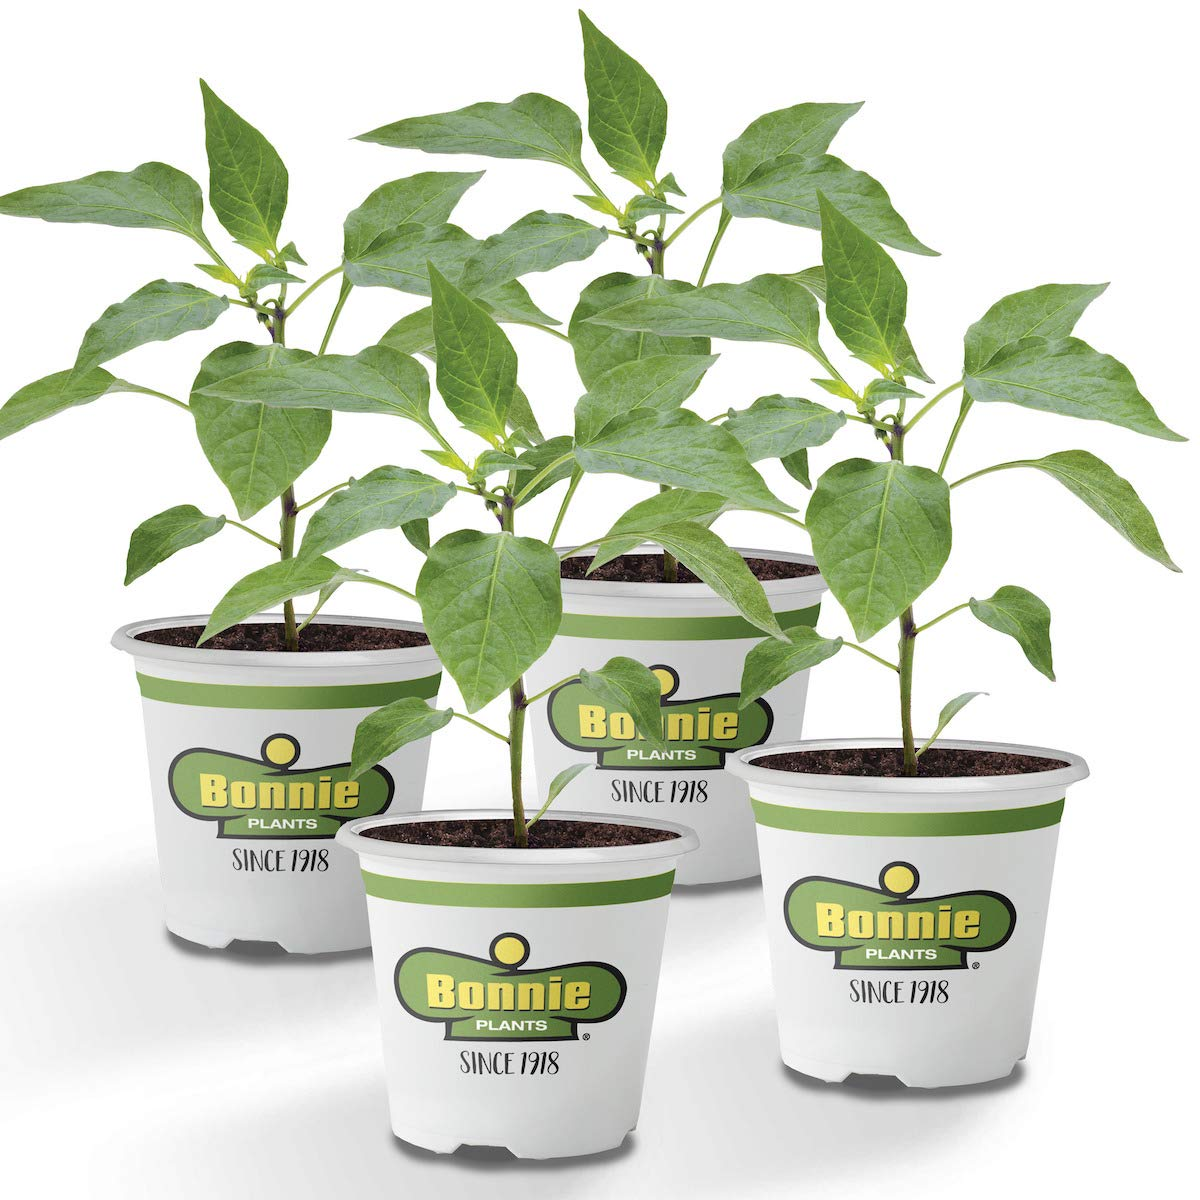 Bonnie Plants Tabasco Pepper - 4 Pack Live Plants, 1.5 - 2 Inch Fruits, 24 - 36 Inch Tall Plants, Great For Pickling & Preserving